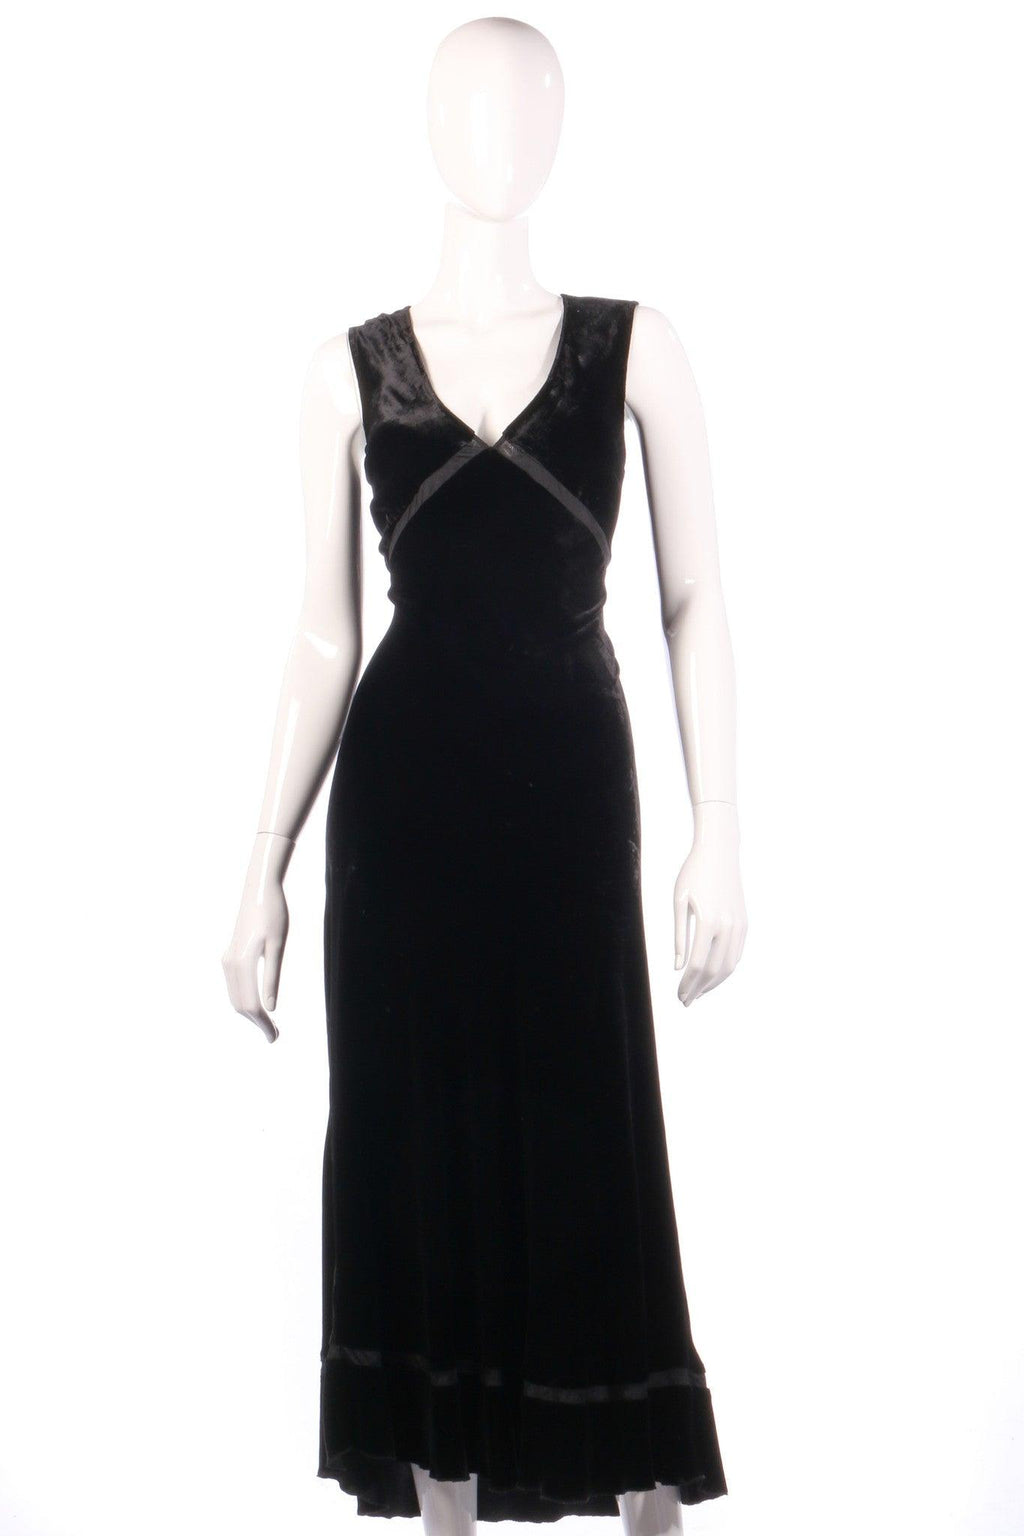 Kew black velvet maxi dress size 14